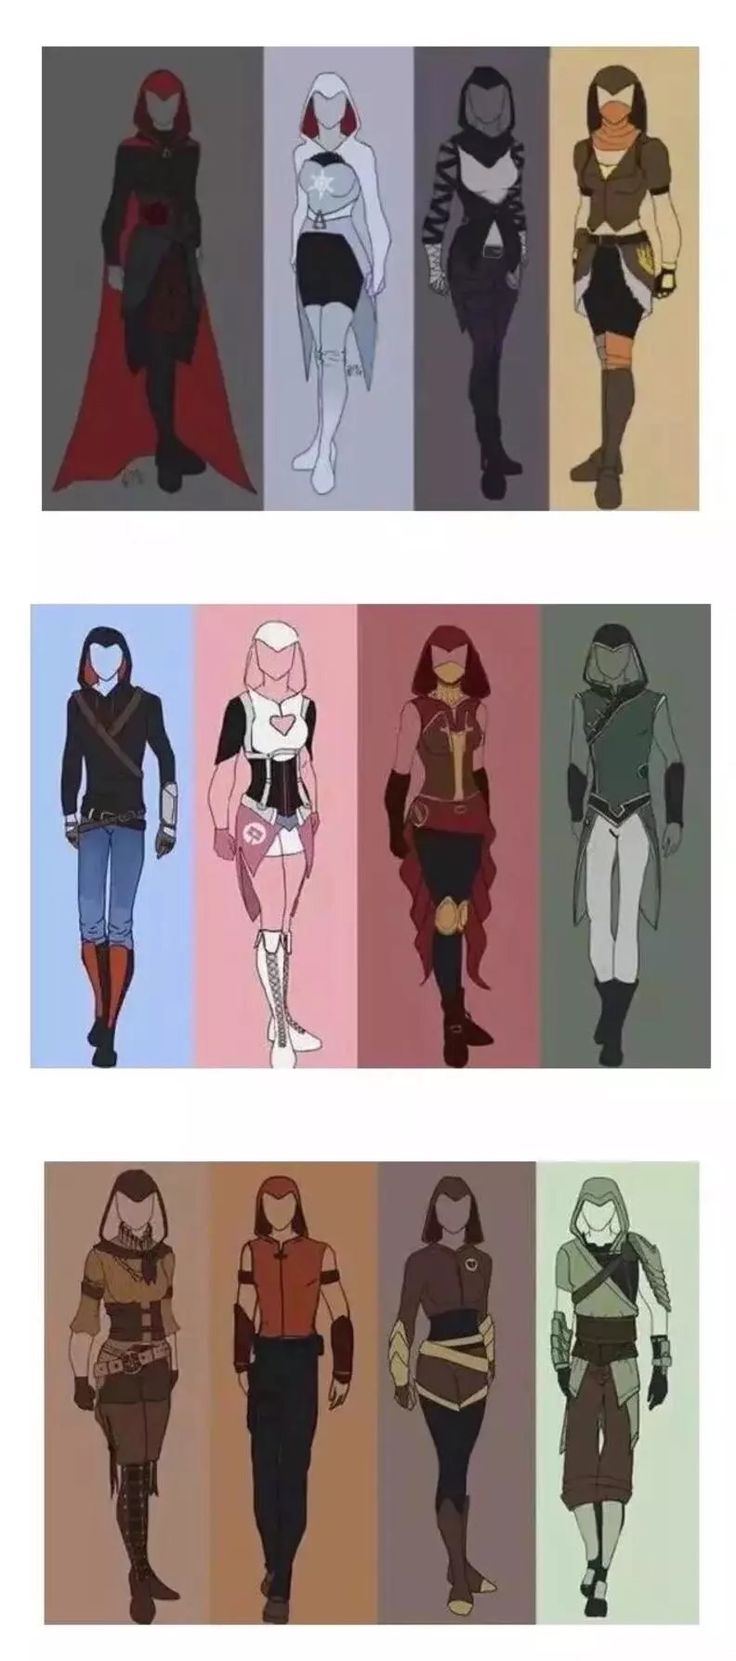 RWBY, JNPR and CFVY, Assassin's Creed style